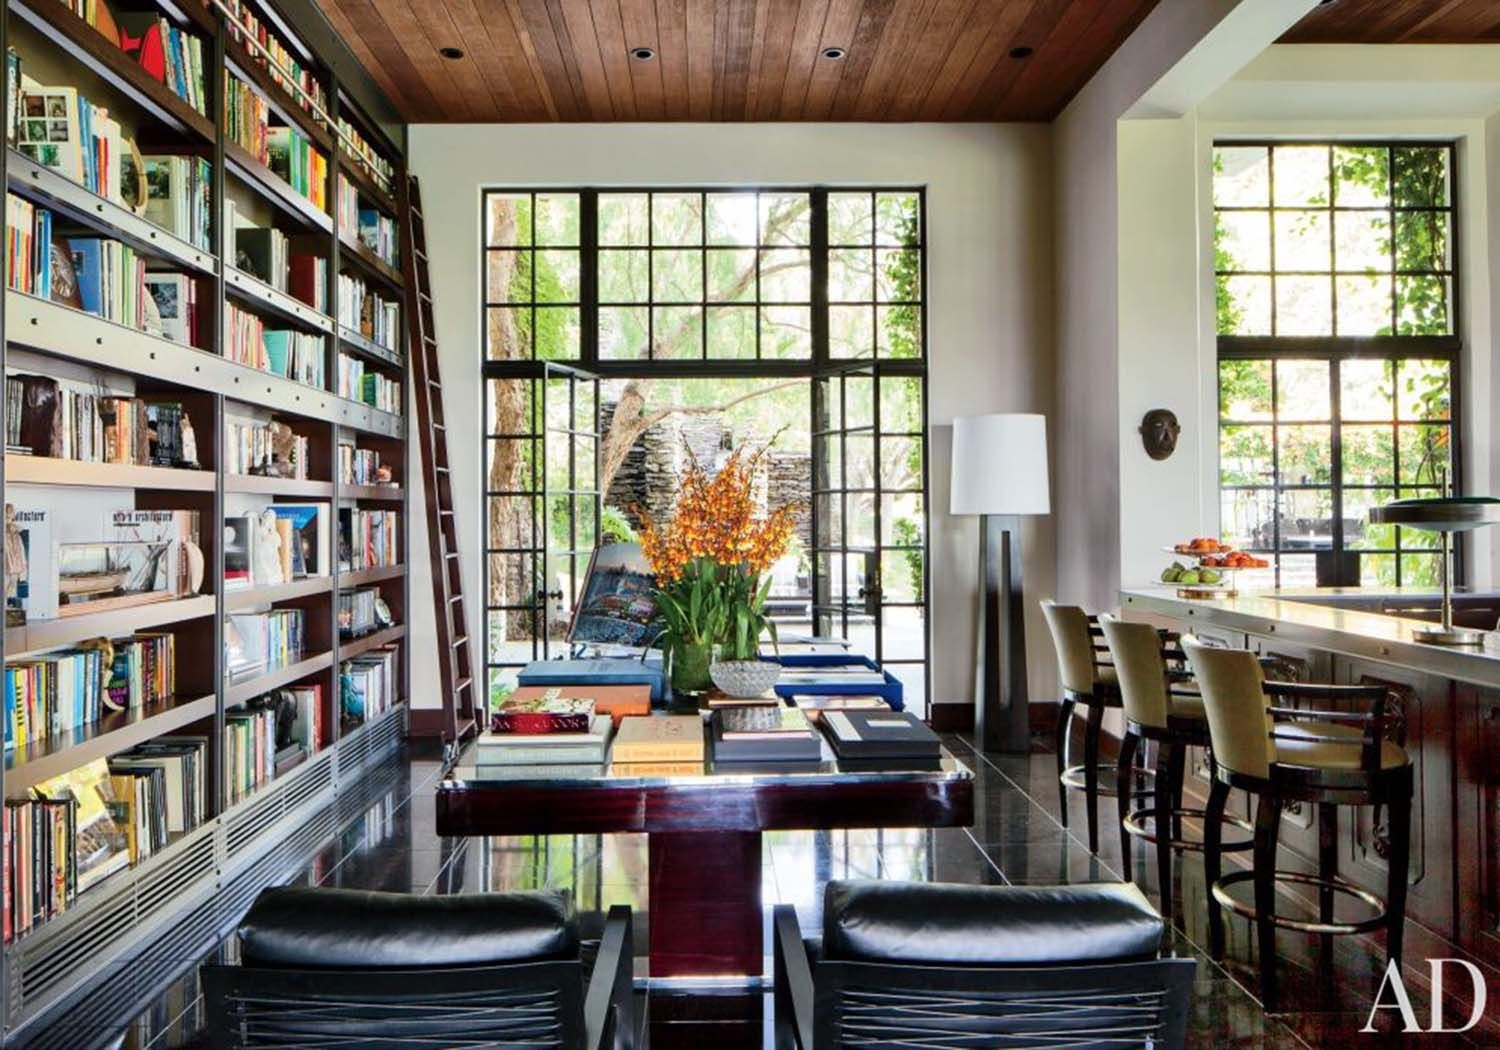 This contemporary living room with a builtin bookshelf full of